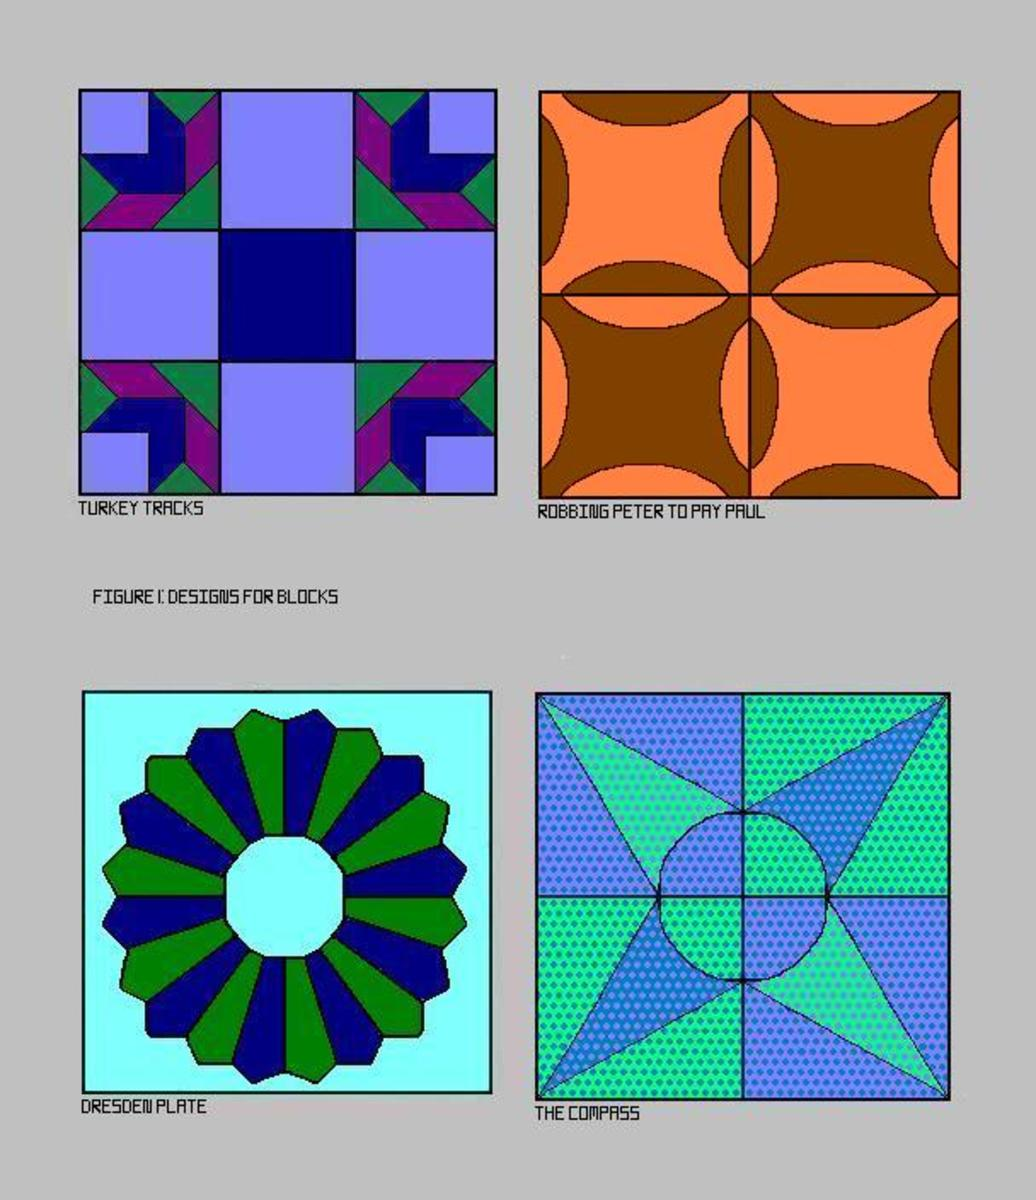 Four Traditional Designs for Blocks